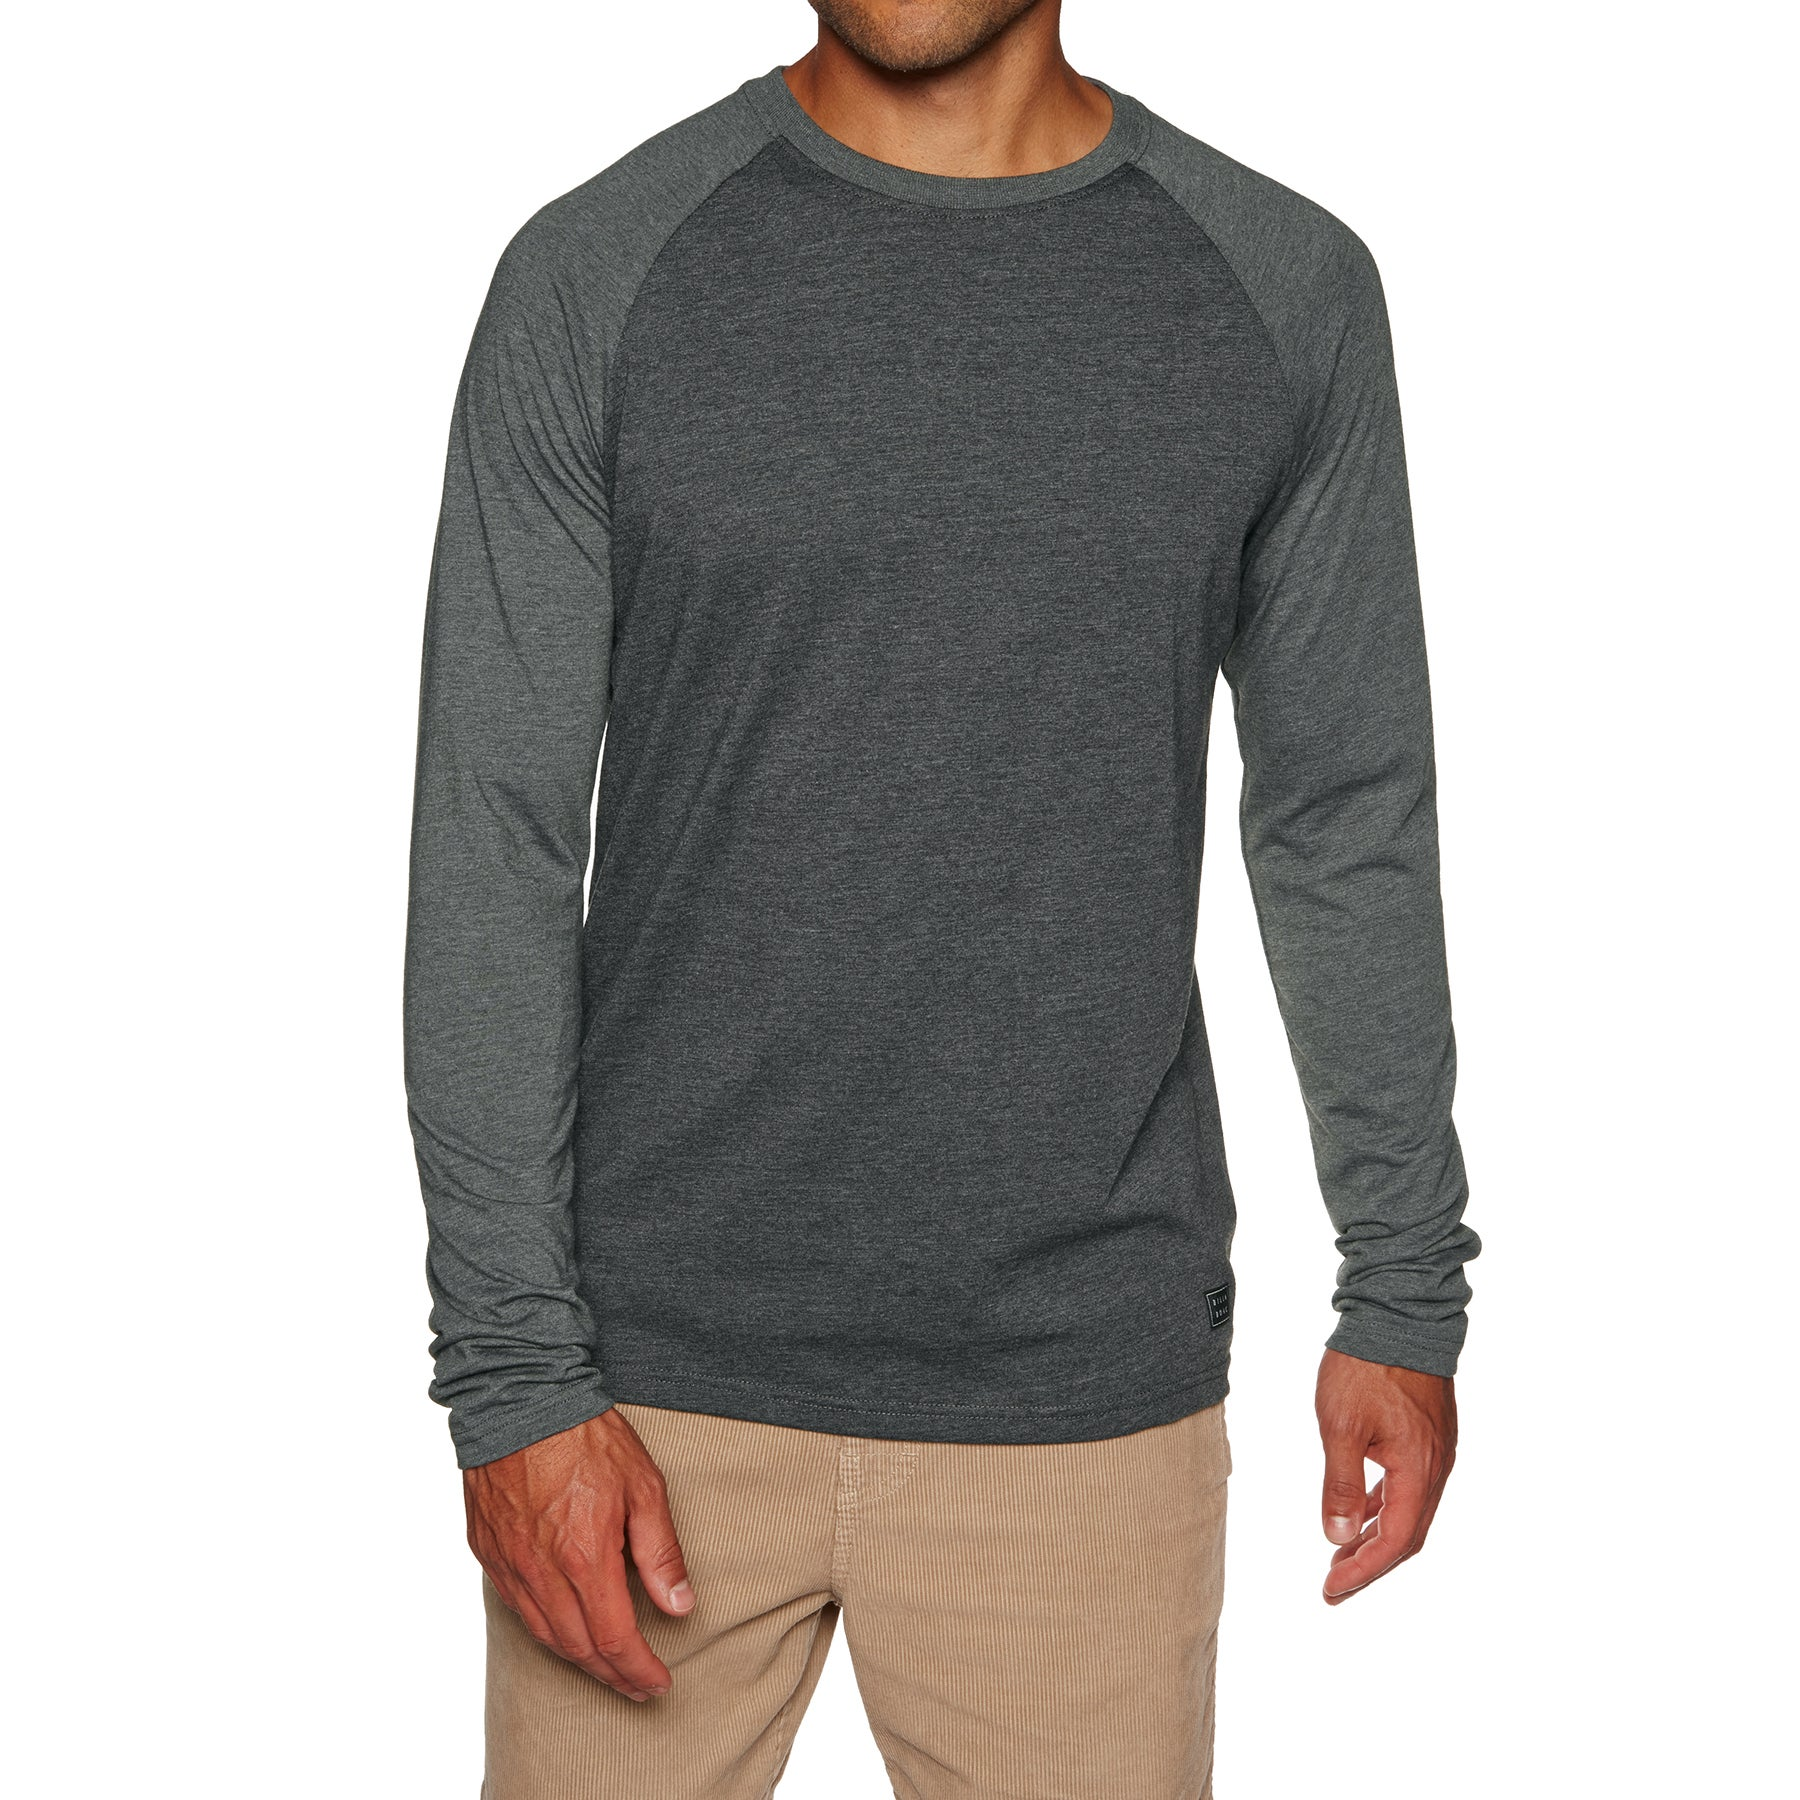 Billabong Woven Crew Long Sleeve T-Shirt - Black